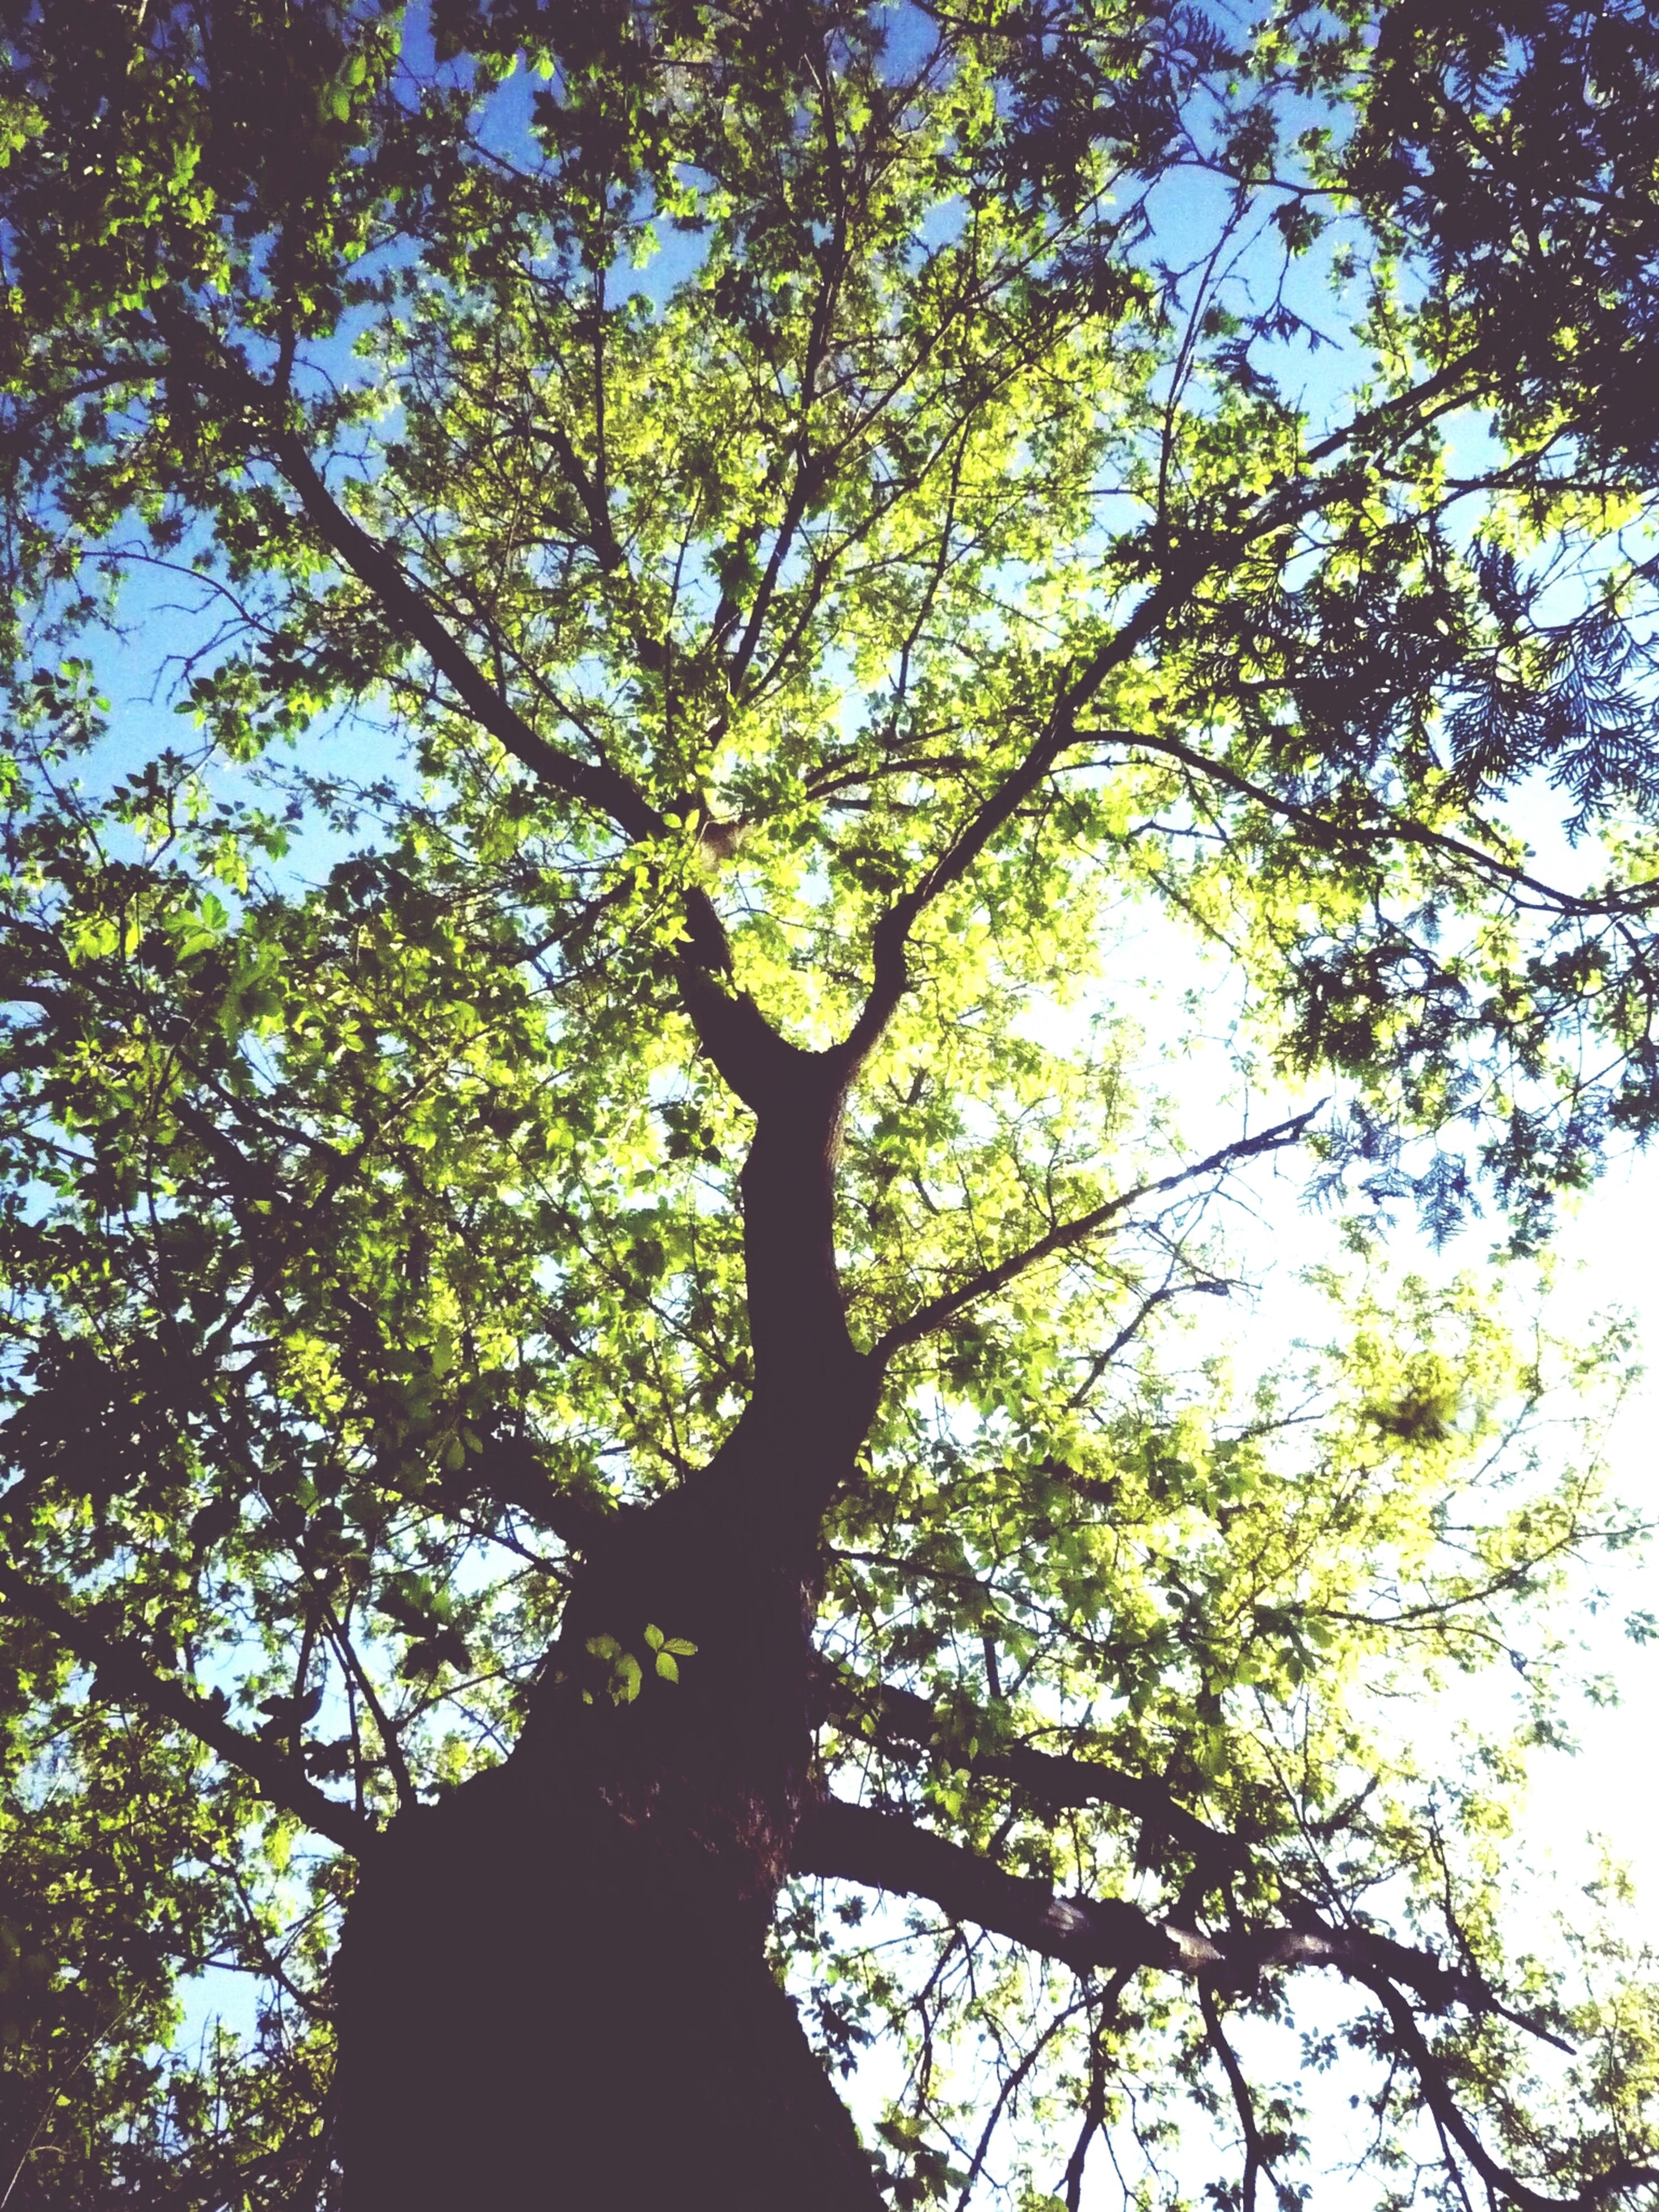 tree, low angle view, branch, growth, nature, tranquility, beauty in nature, sky, tree trunk, green color, forest, outdoors, no people, day, scenics, backgrounds, clear sky, tranquil scene, directly below, full frame